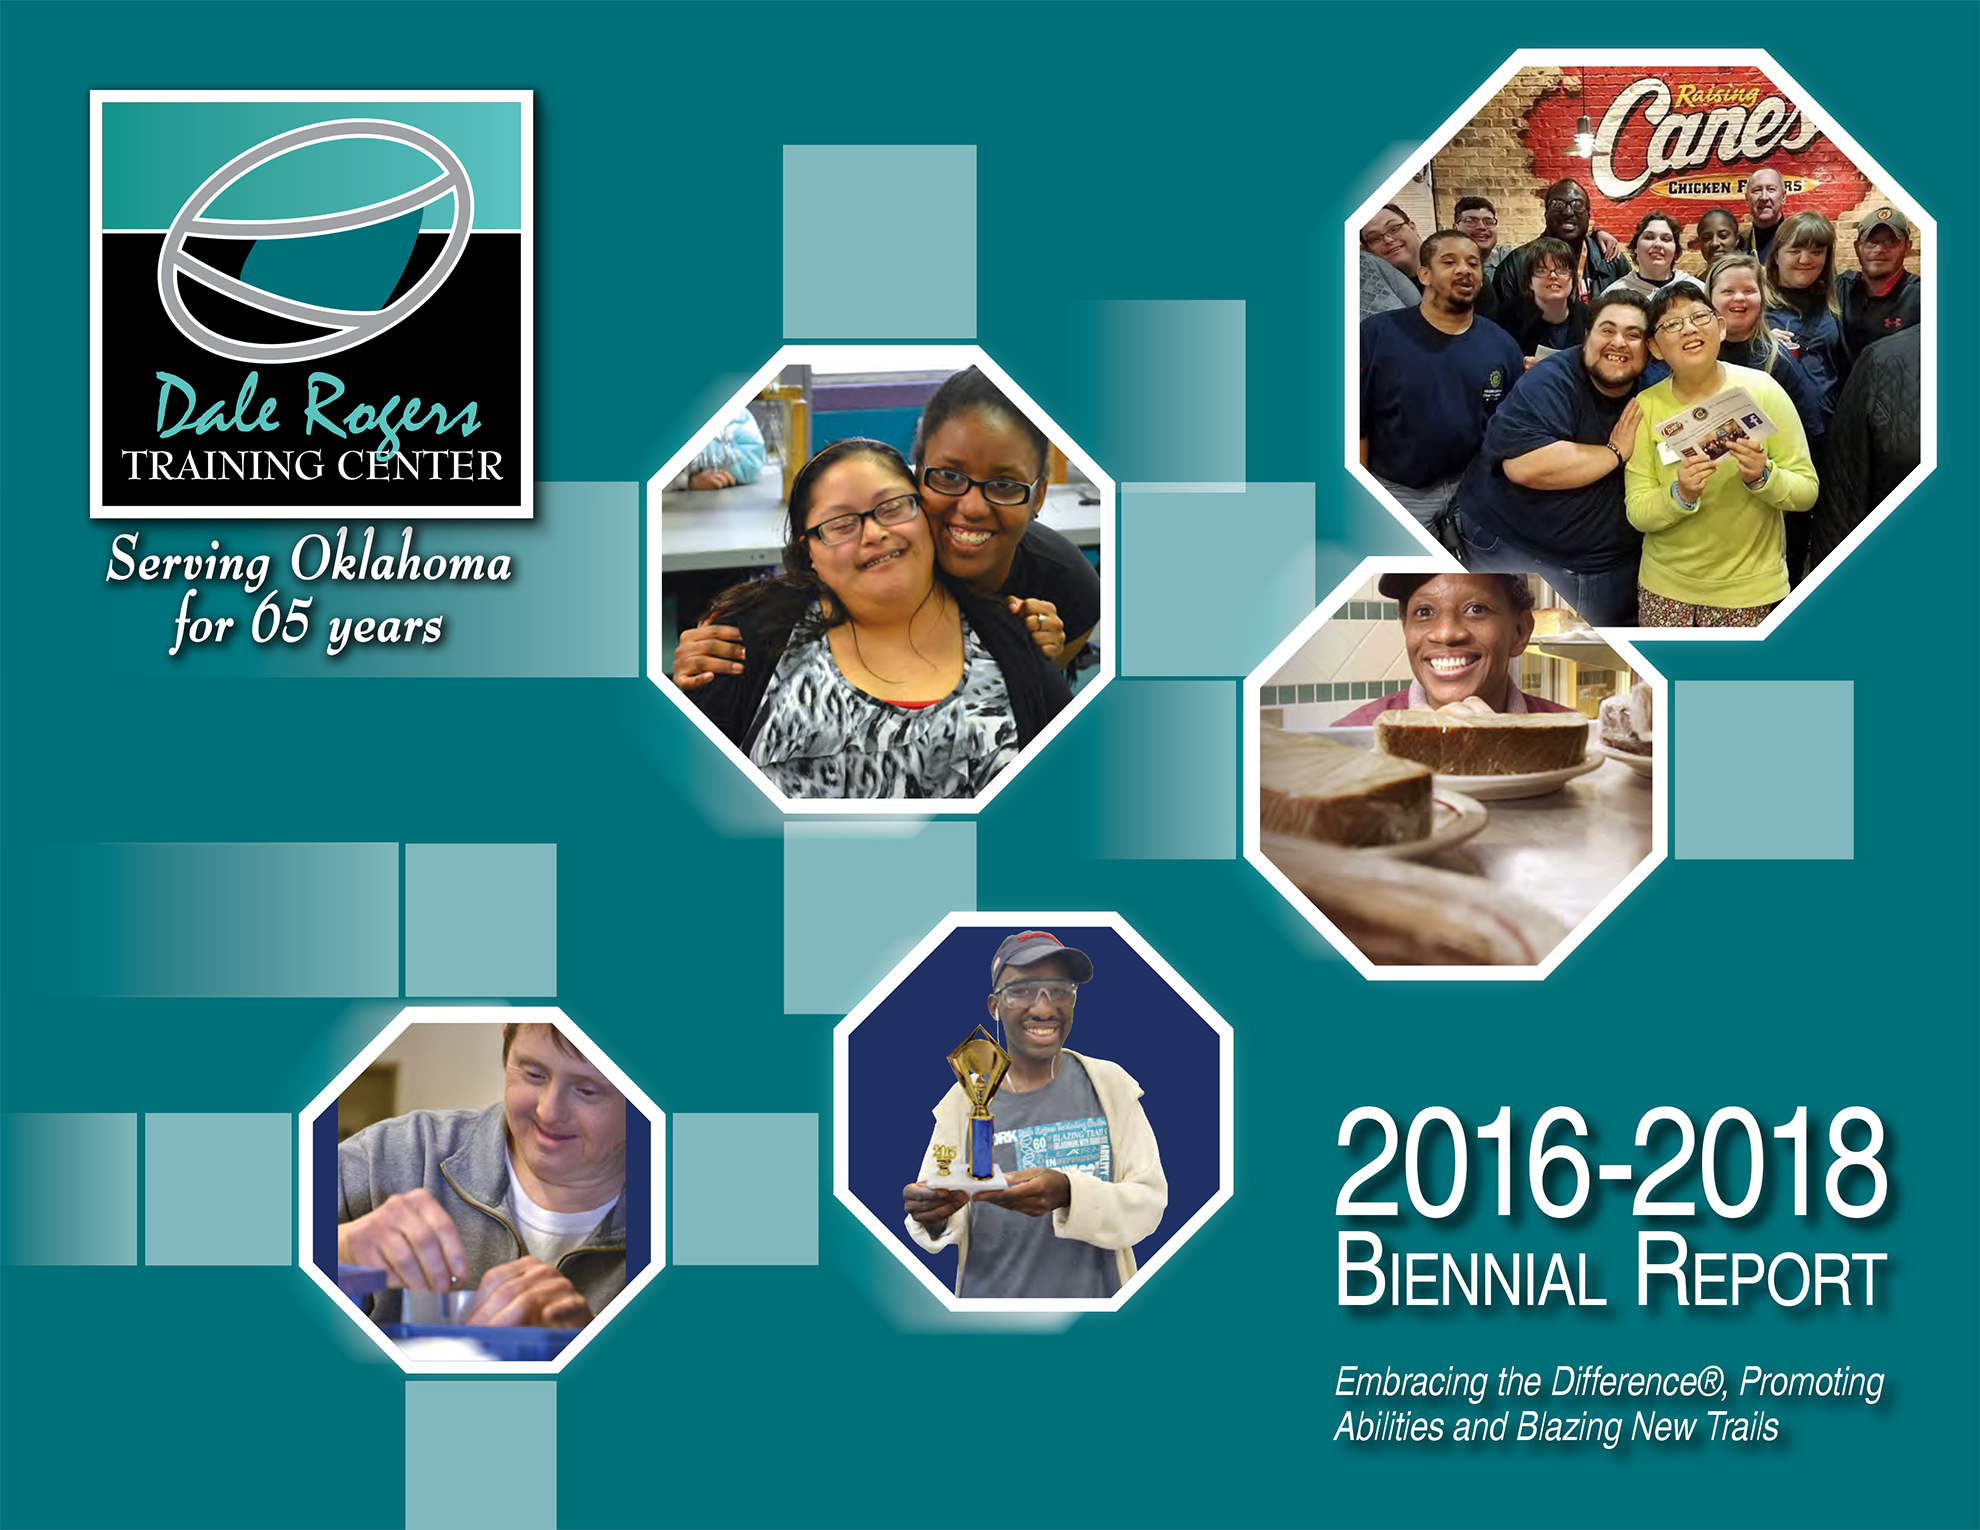 Cover of the 2016-2018 DRTC Biennial Report featuring several images of individuals in DRTC's programs.